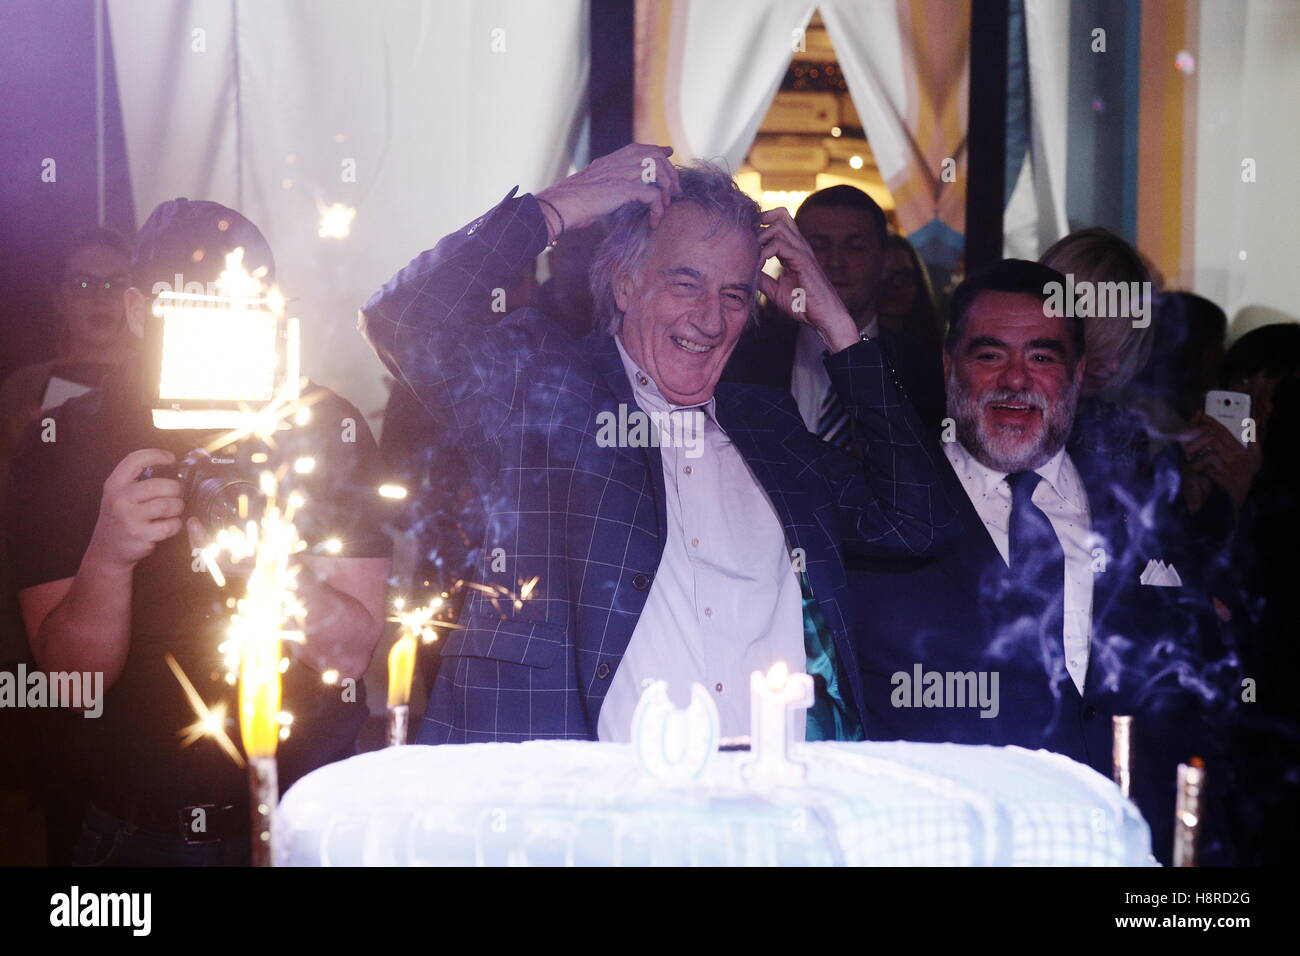 Moscow, Russia. 16th Nov, 2016. British fashion designer Paul Smith (C) attends an event marking the 10th birthday - Stock Image